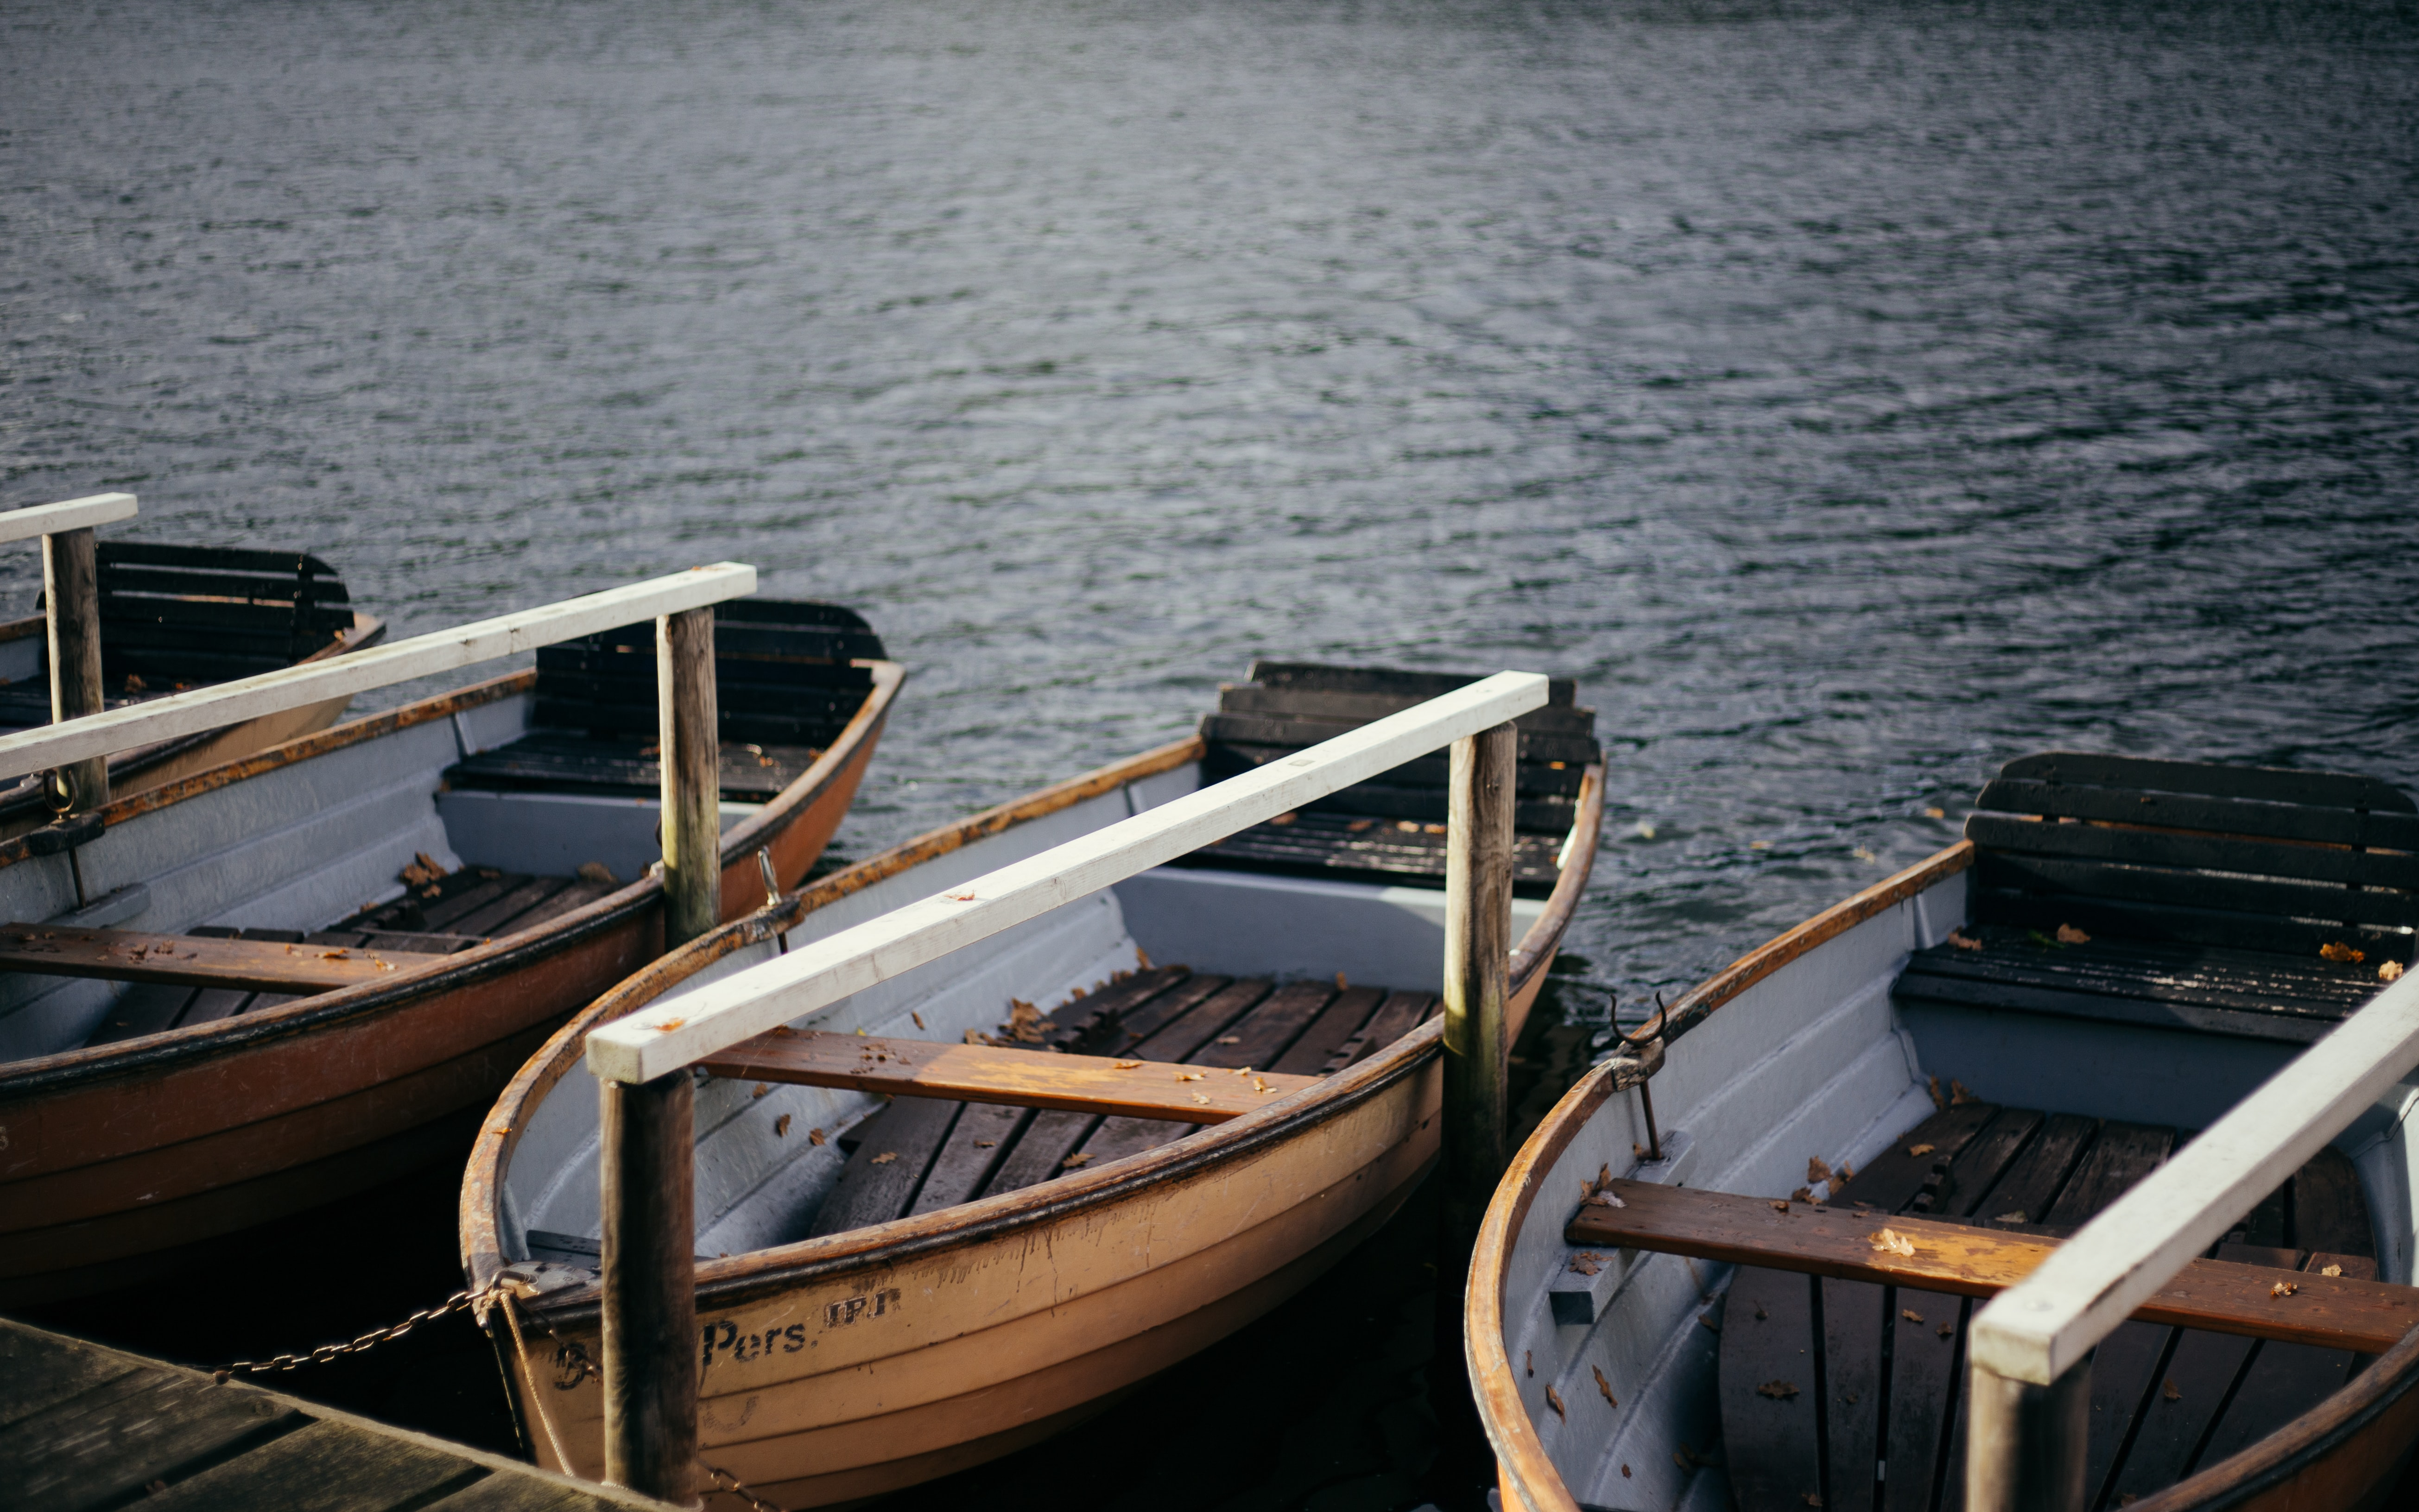 thee brown wooden boats beside dock with body of water during daytime